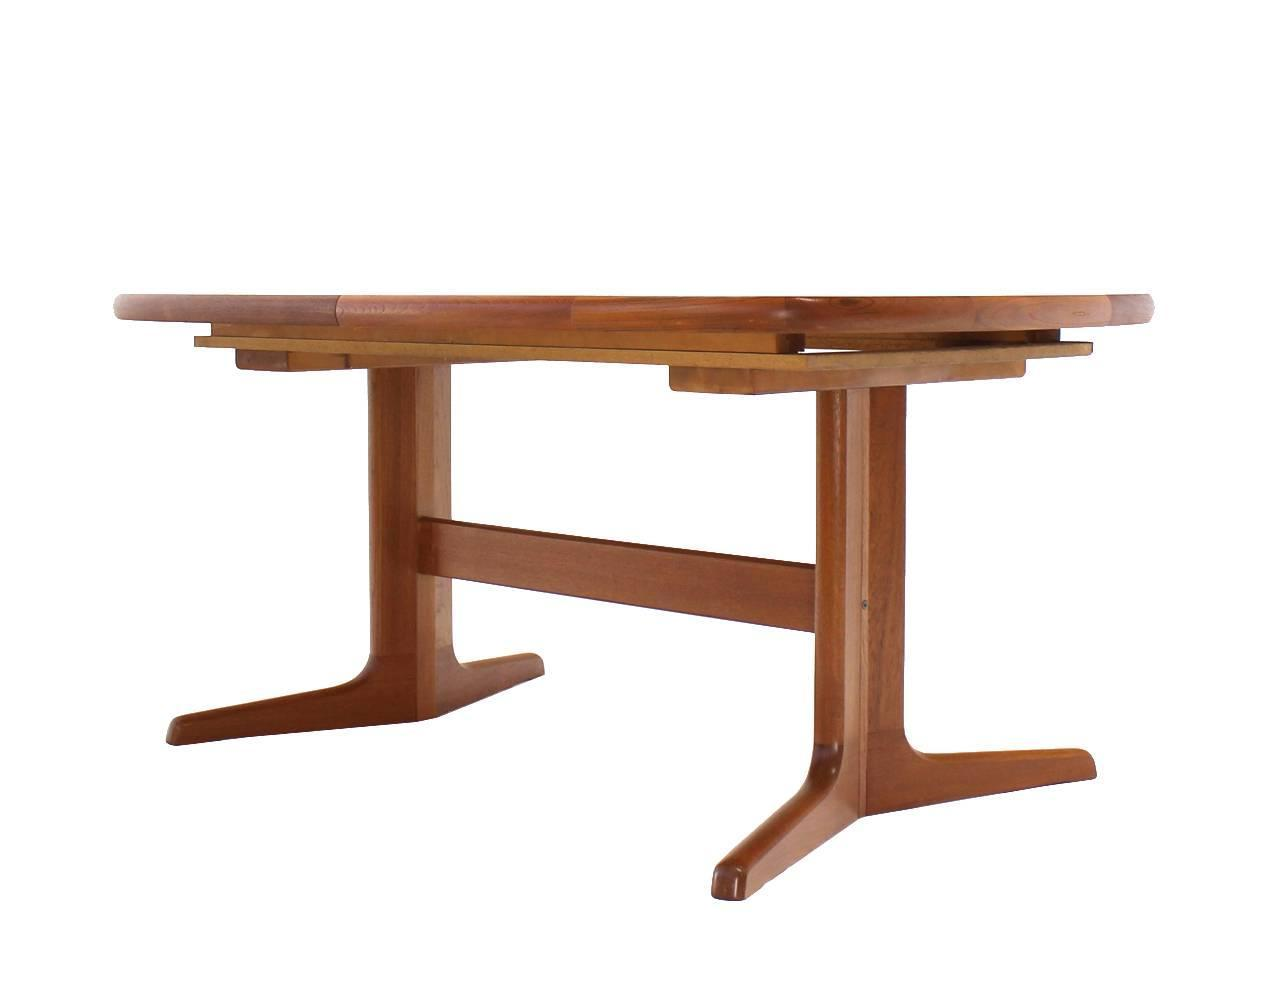 Danish mid century modern teak dining room table with two for Dining room table 2 leaves